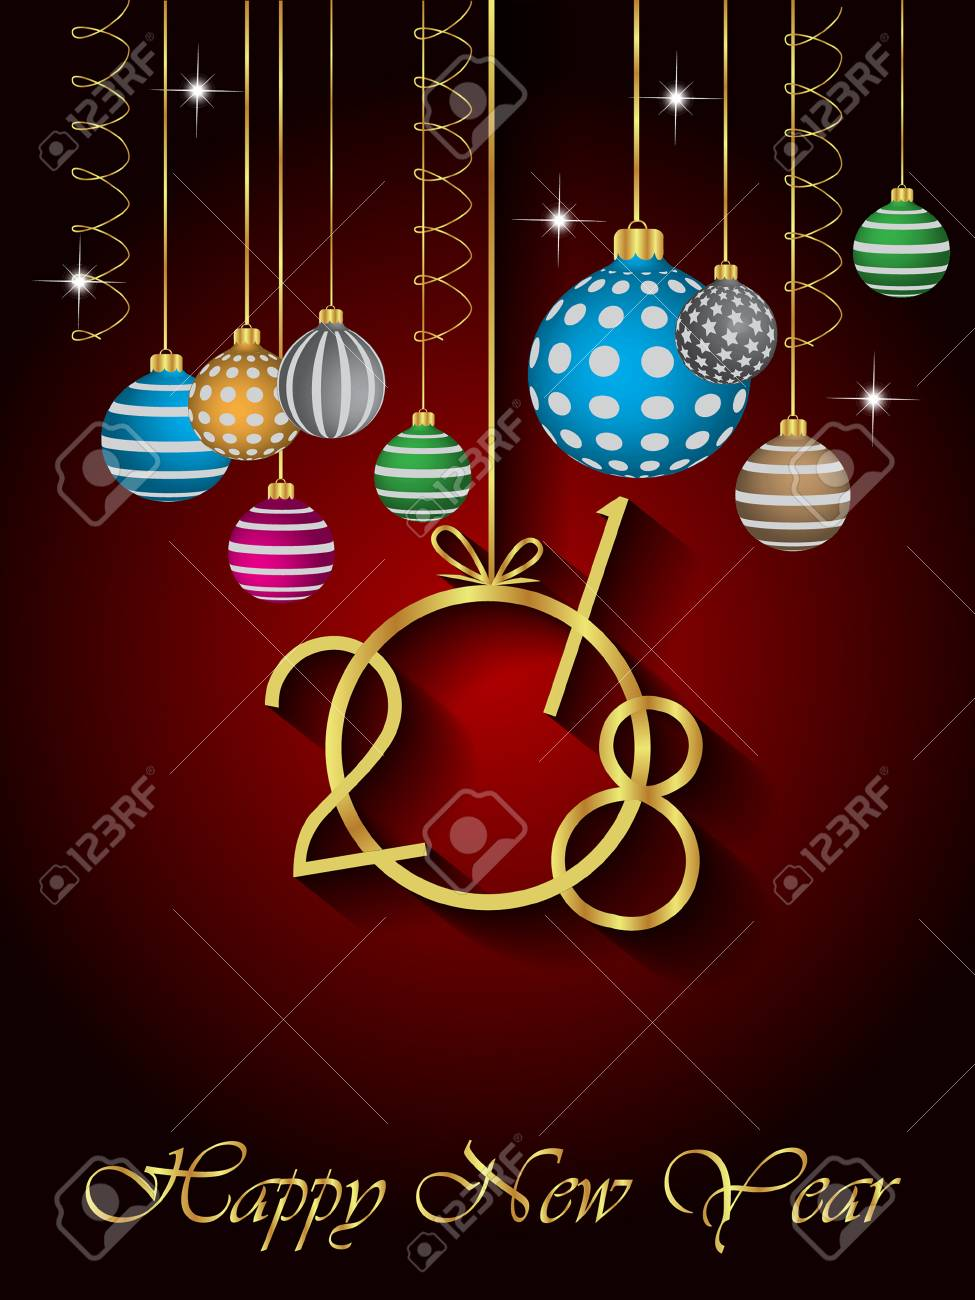 2018 happy new year background stock vector 85752153